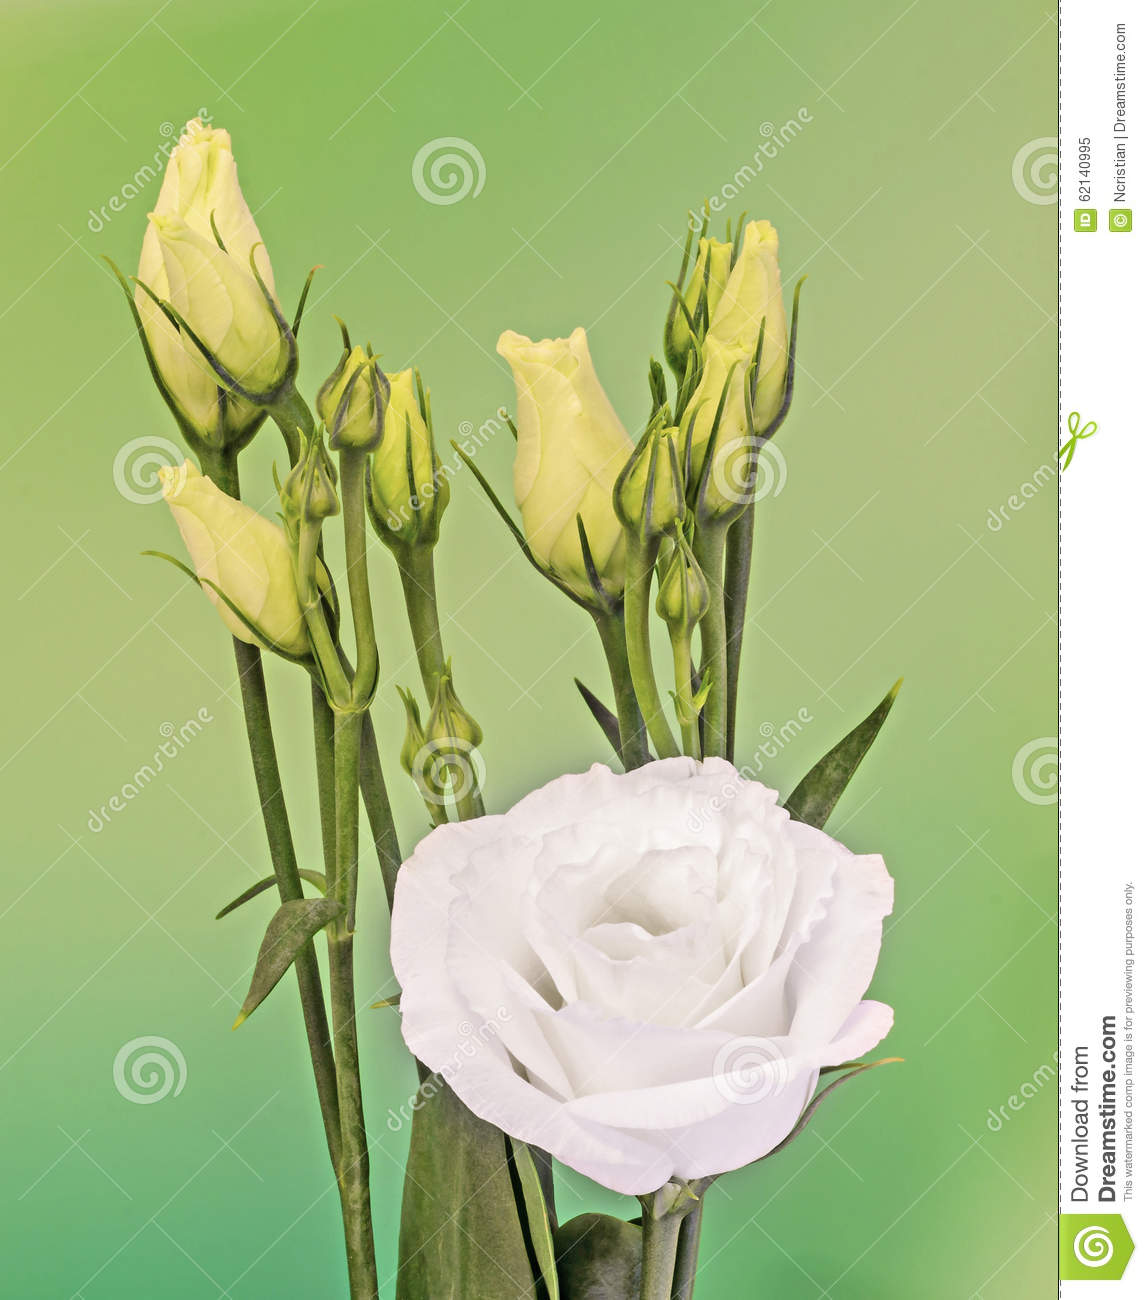 White Eustoma, Lisianthus Flowers, Yellow Buds, Family.